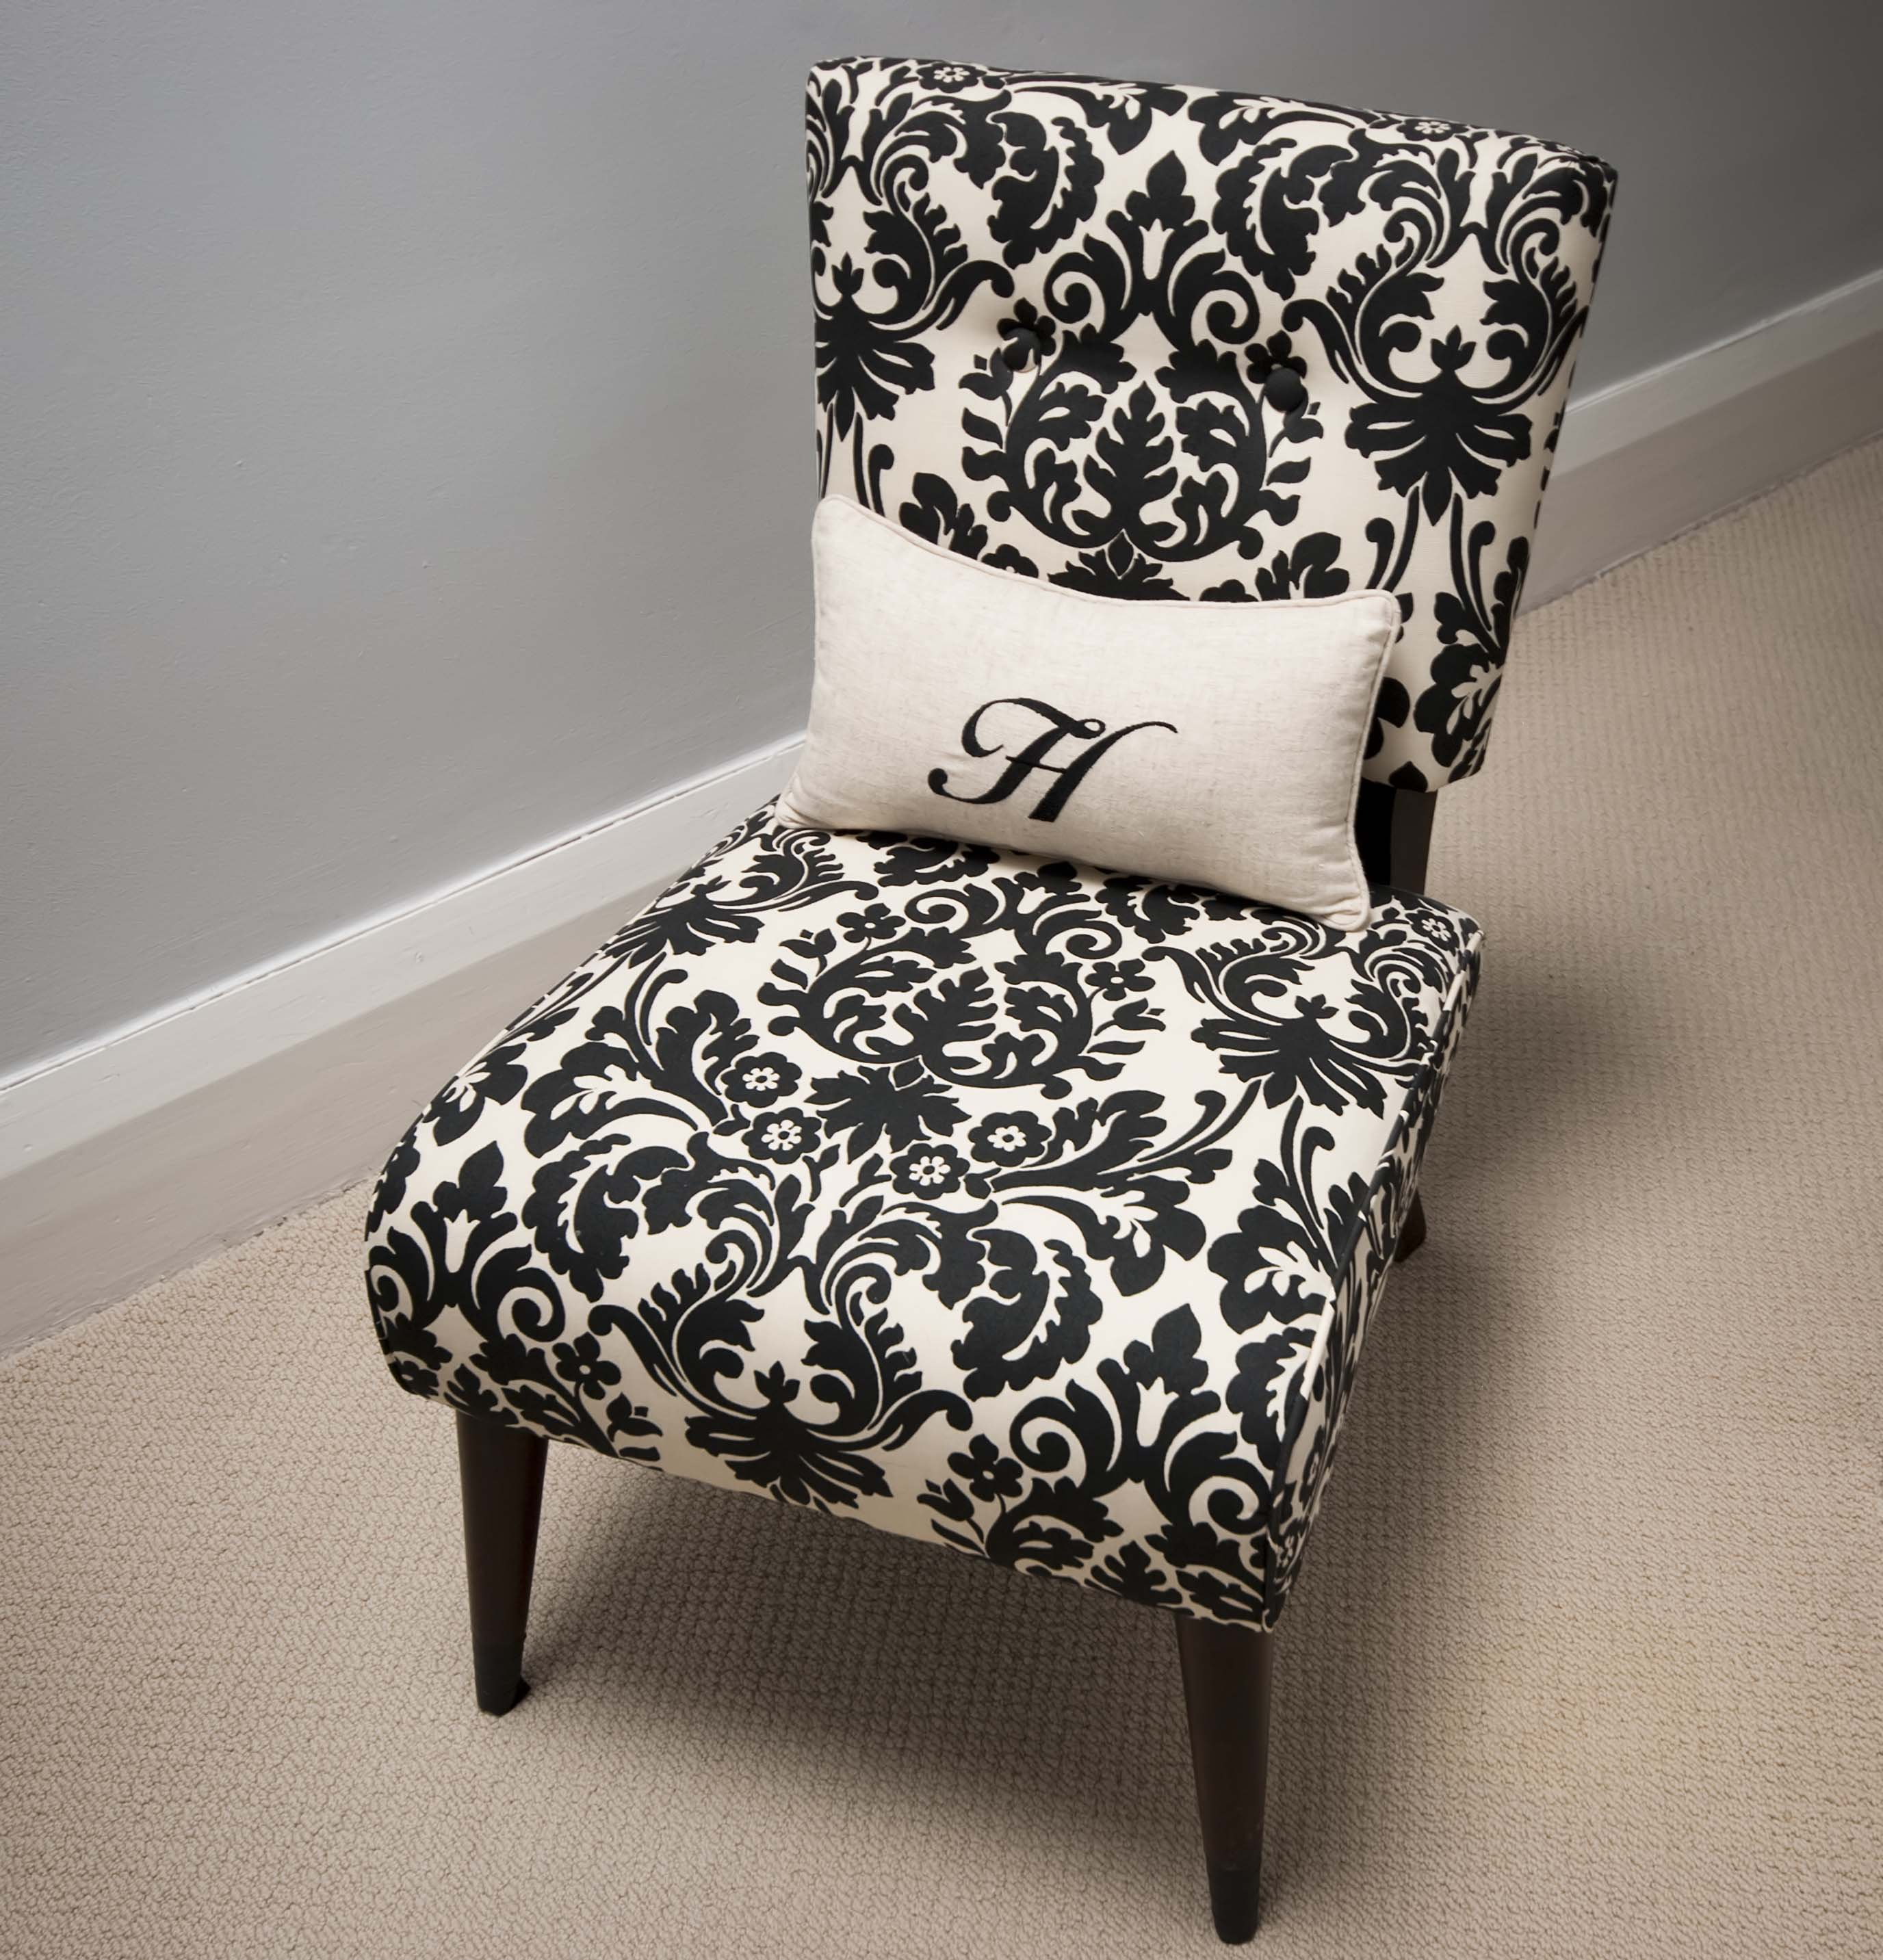 damask accent chair crochet christmas covers ideas homesfeed small with white pillow